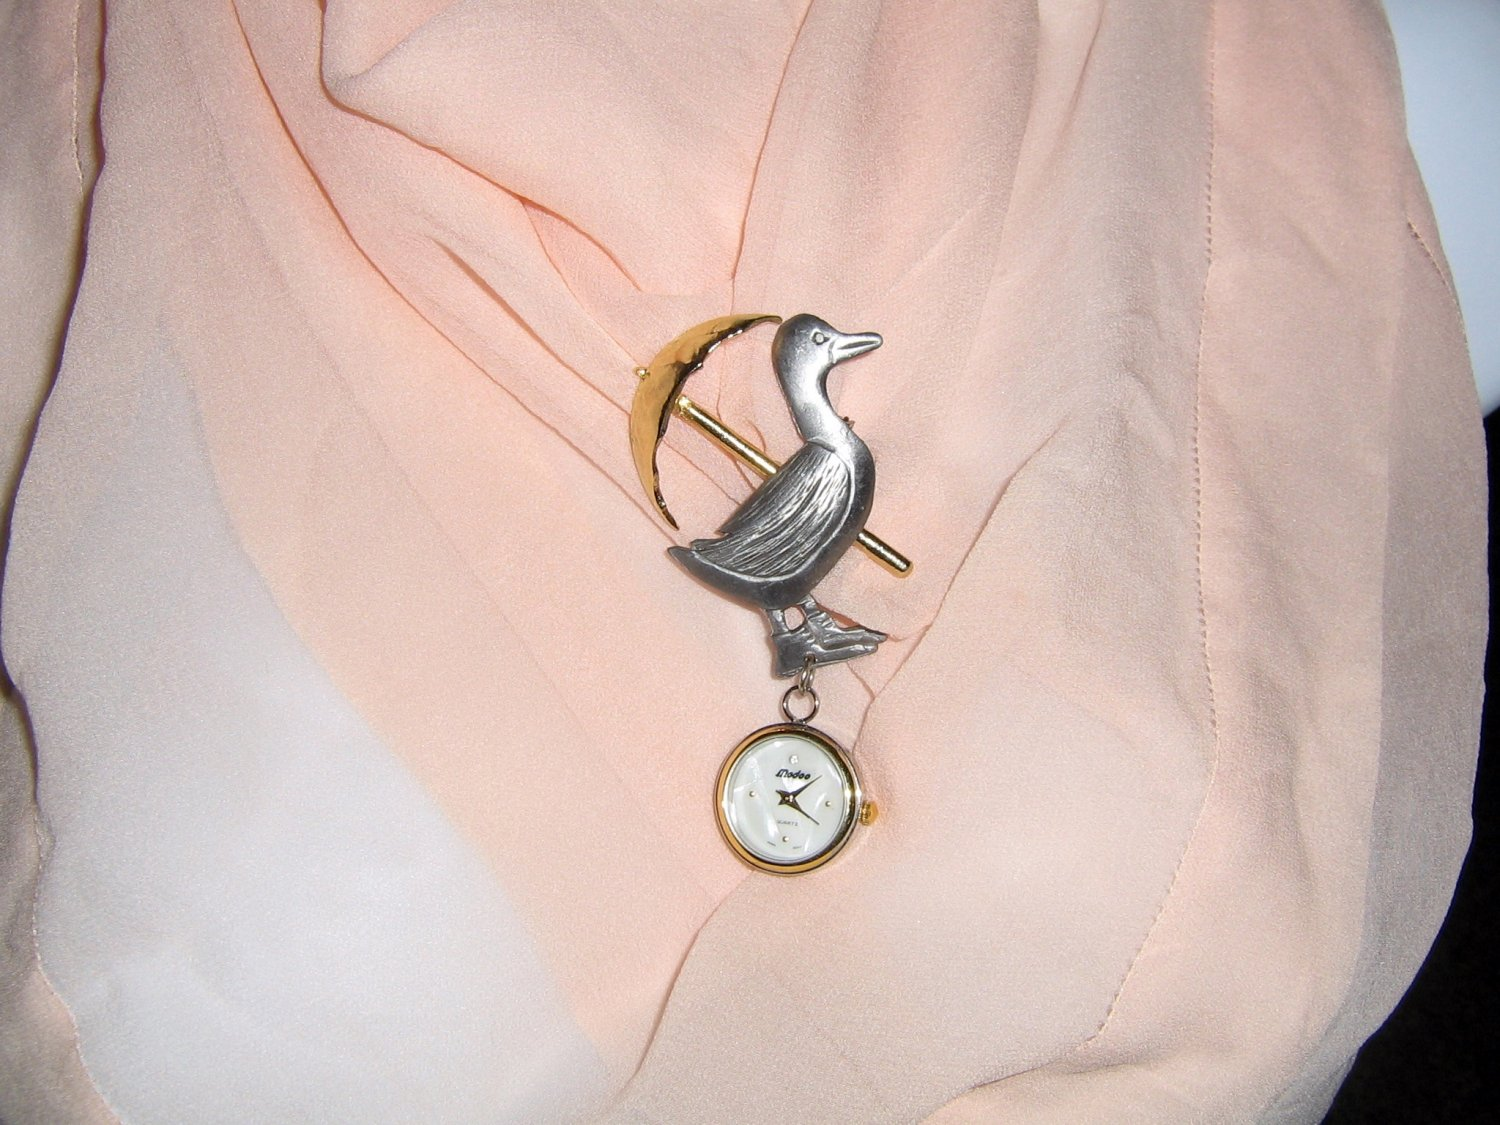 Ultra Craft Pewter and Gold Tone Rainy Day Duck Brooch with Modoo Watch #00240